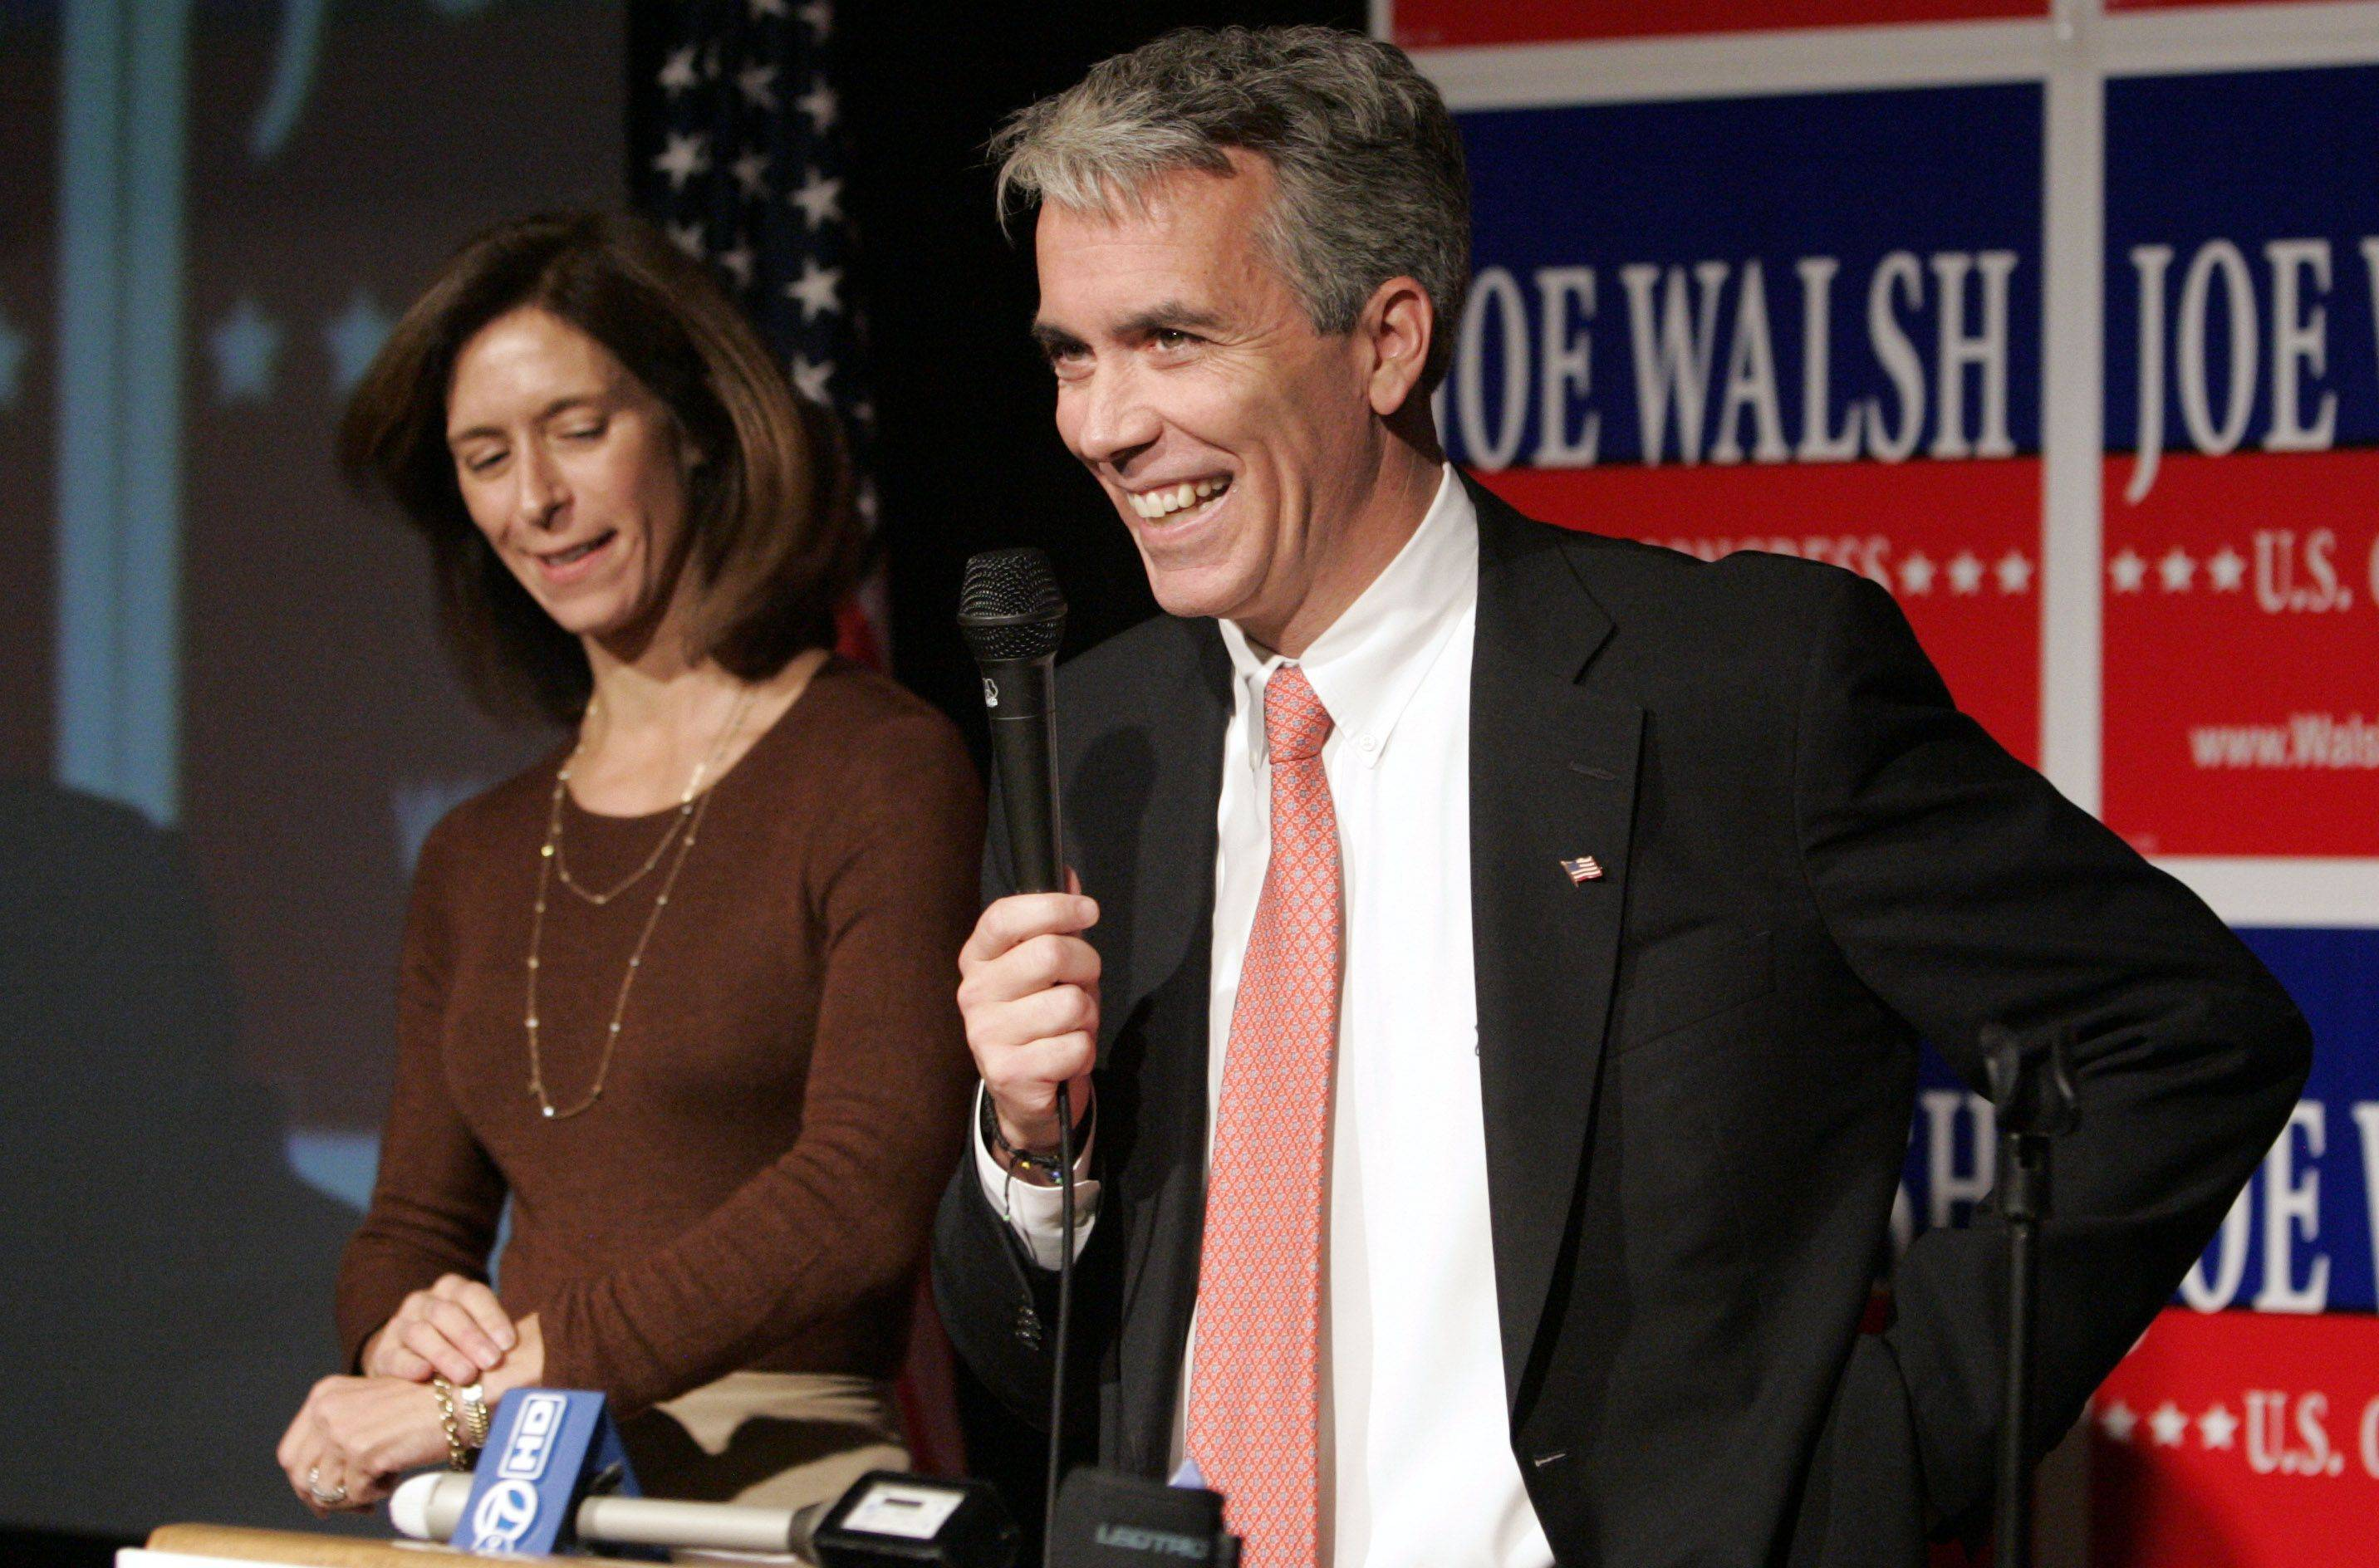 8th congressional candidate Joe Walsh and his wife, Helene, speak to supporters at the Mill Creek Banquets in Wauconda Tuesday.